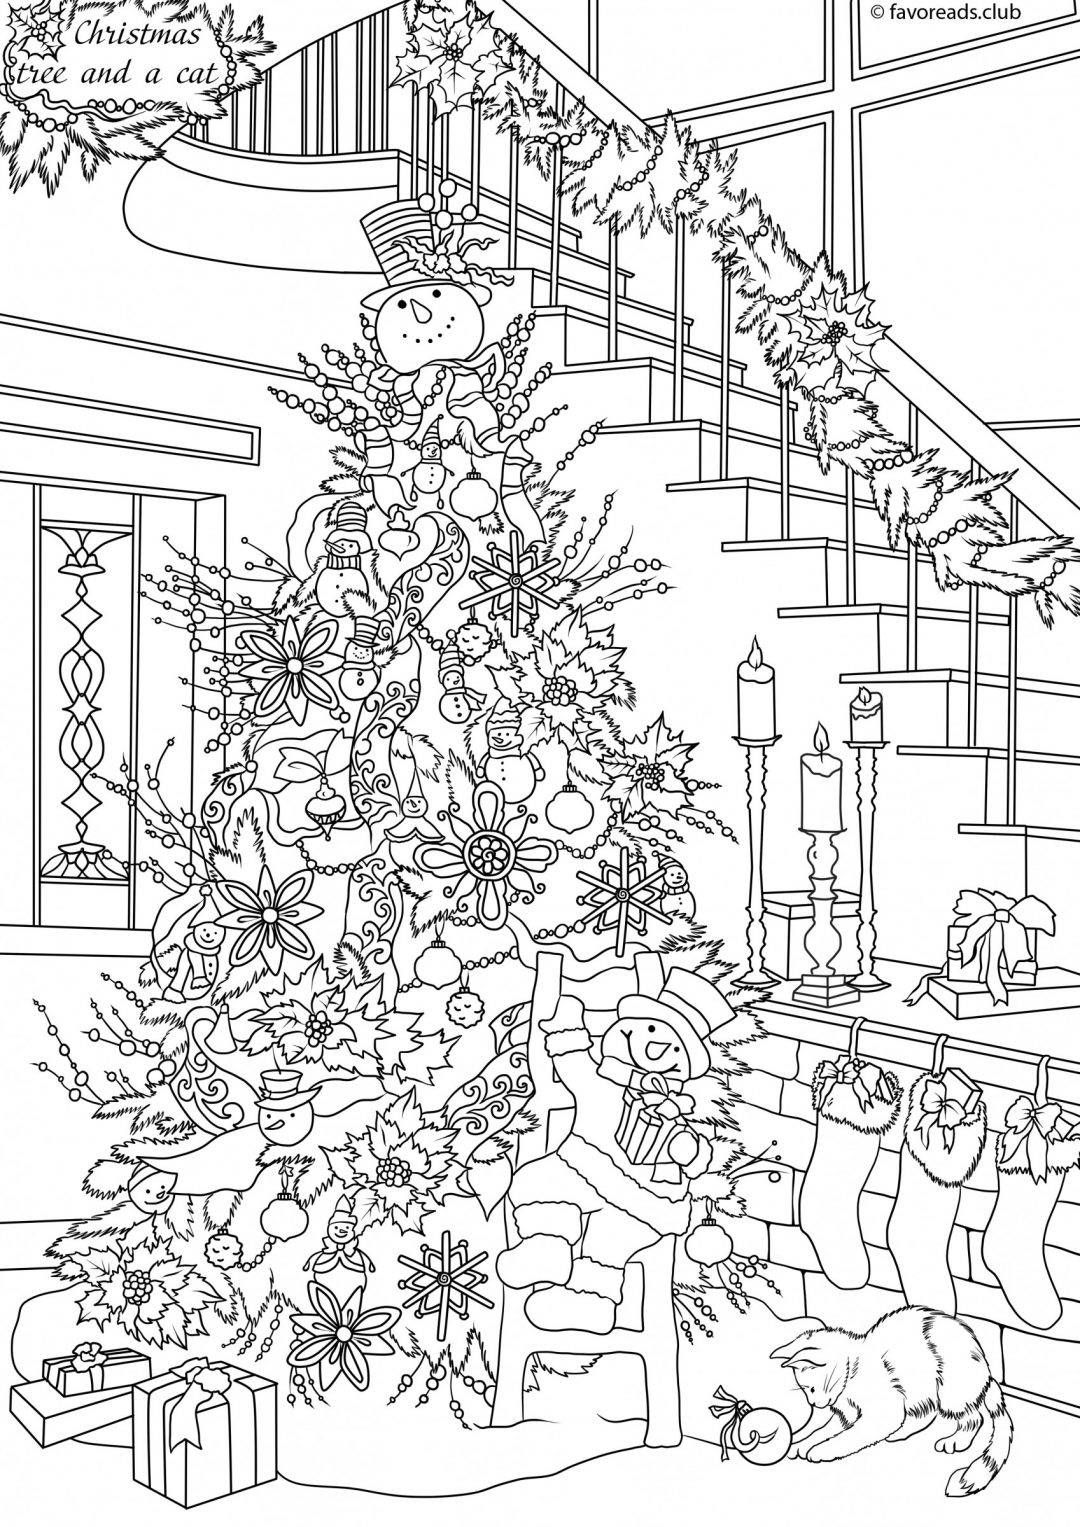 Cute Christmas Village Color All The Beautiful Houses Of This Cute Snowy Village R Easter Coloring Pages Christmas Coloring Pages Christmas Pictures To Color